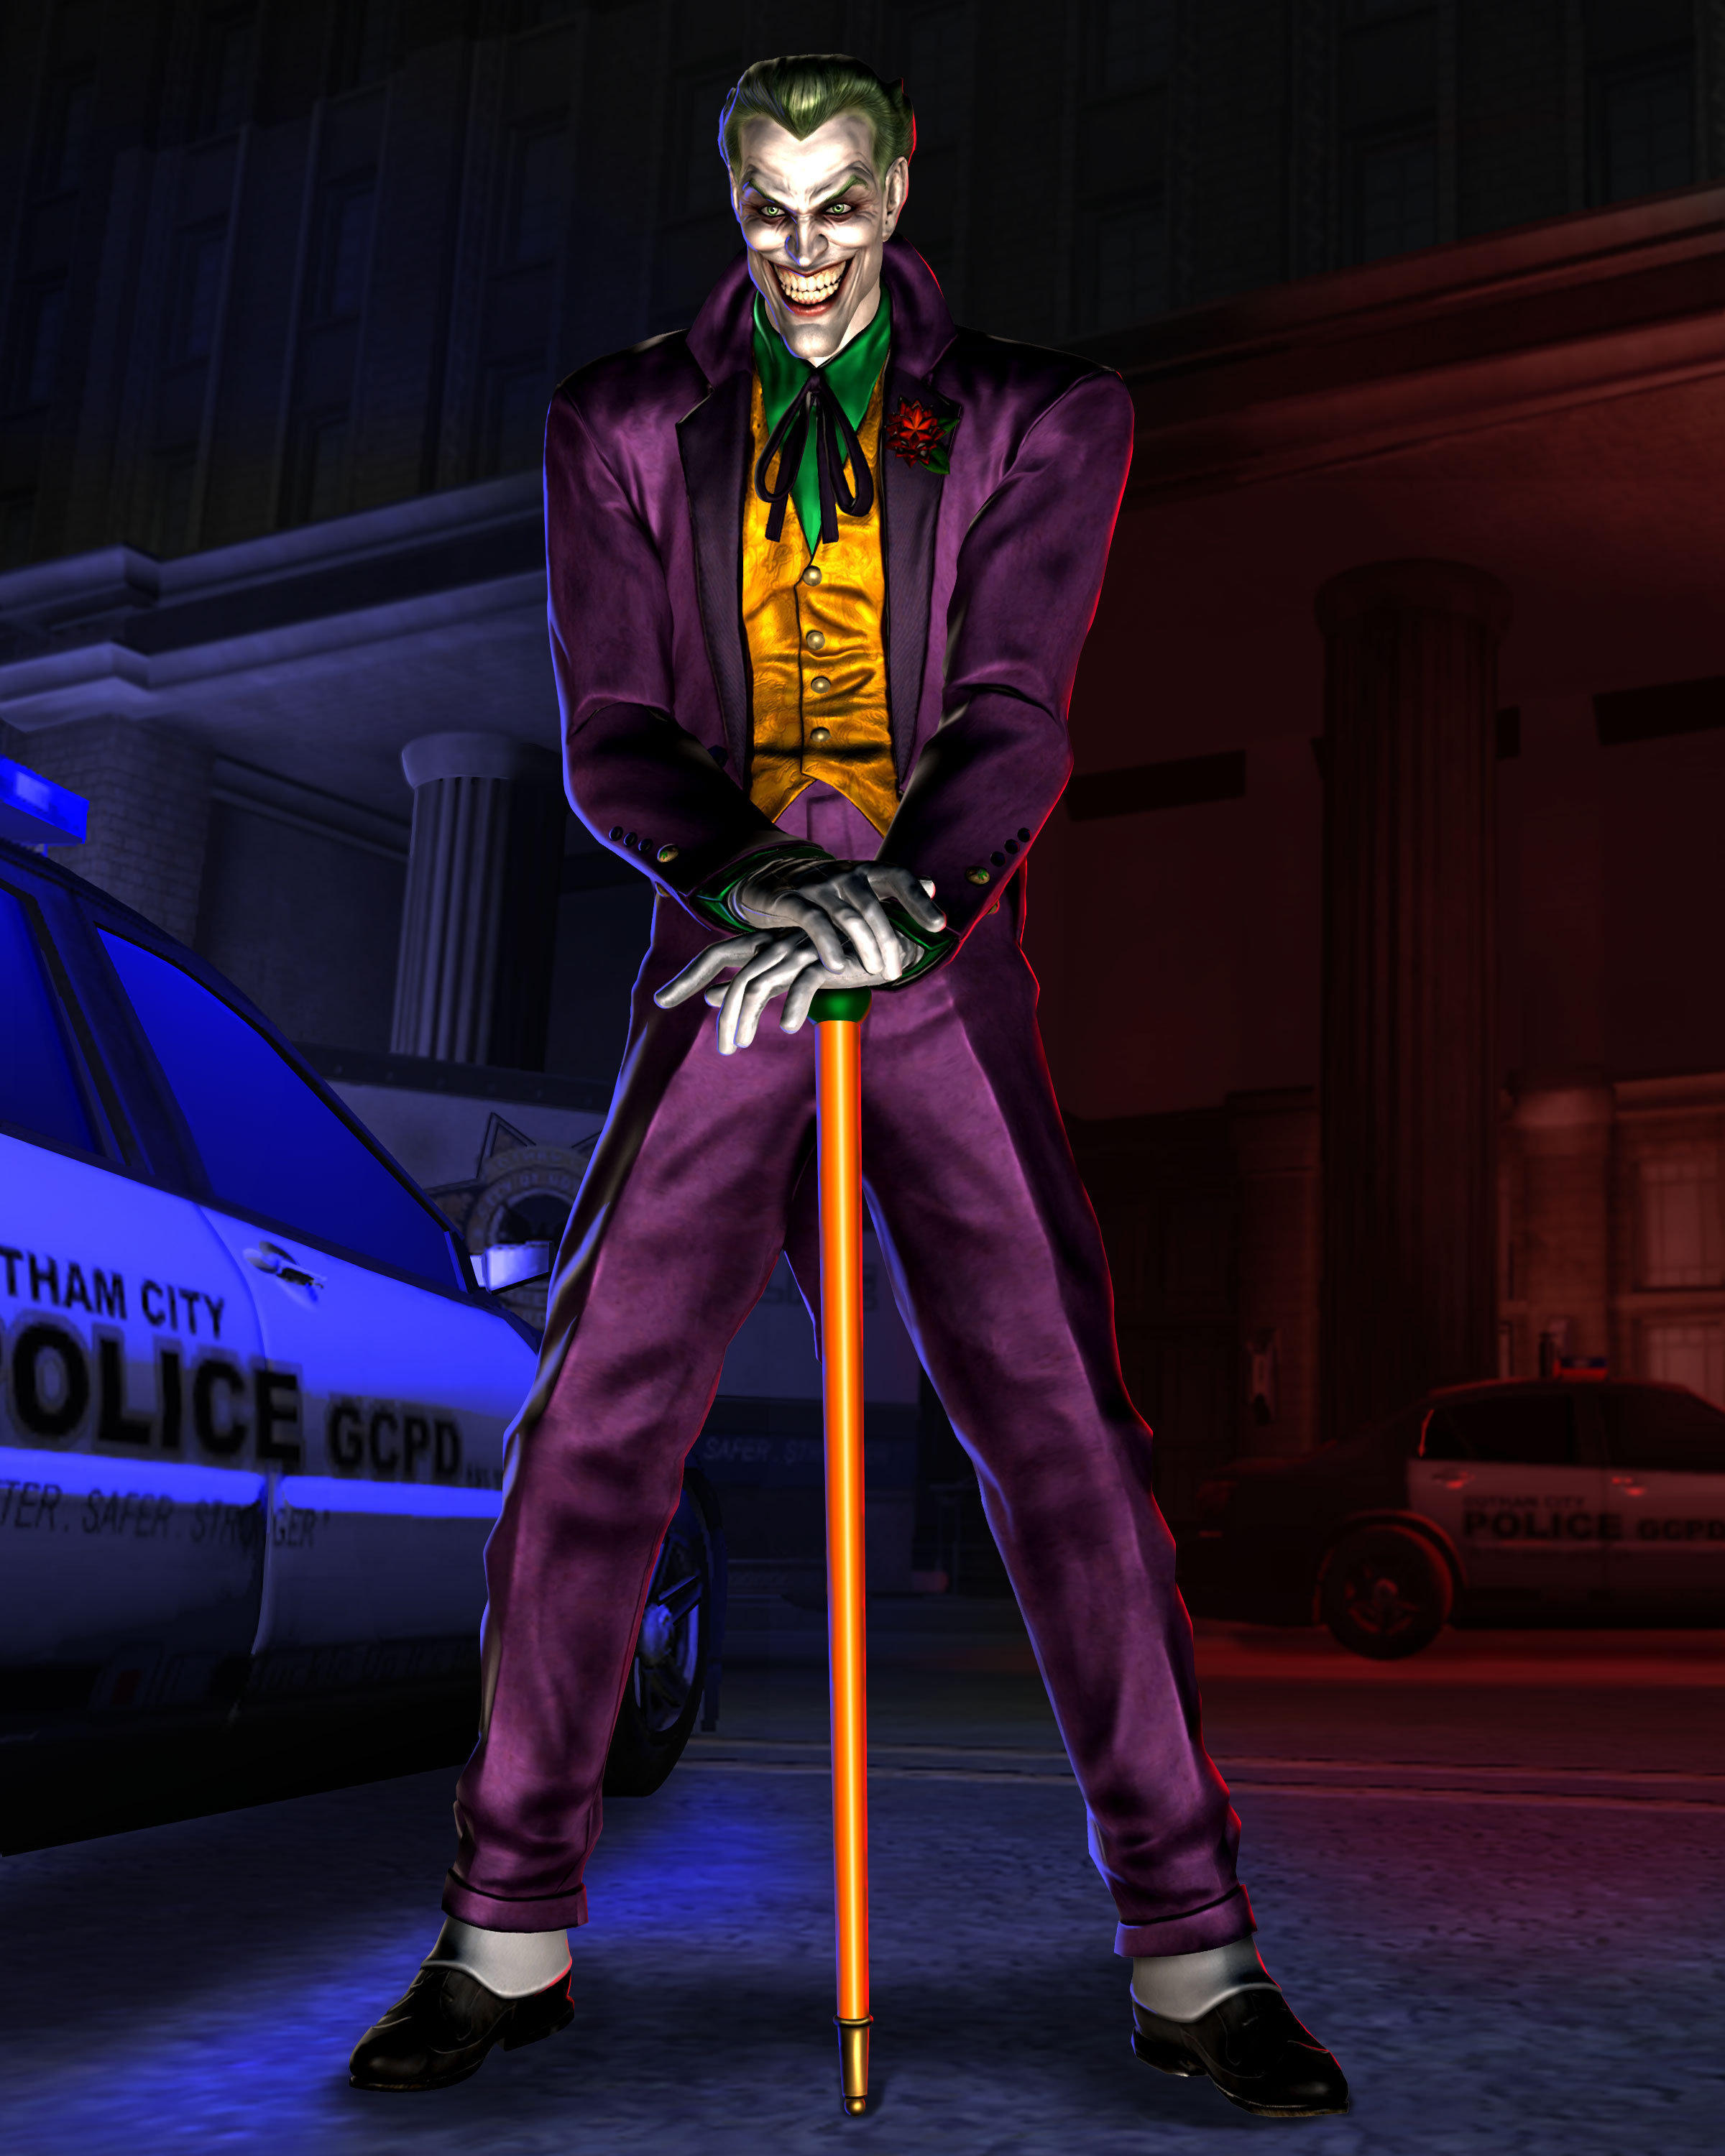 Comic Joker Wallpaper 2400x3000 Comic Joker Too Much Mavel 2400x3000